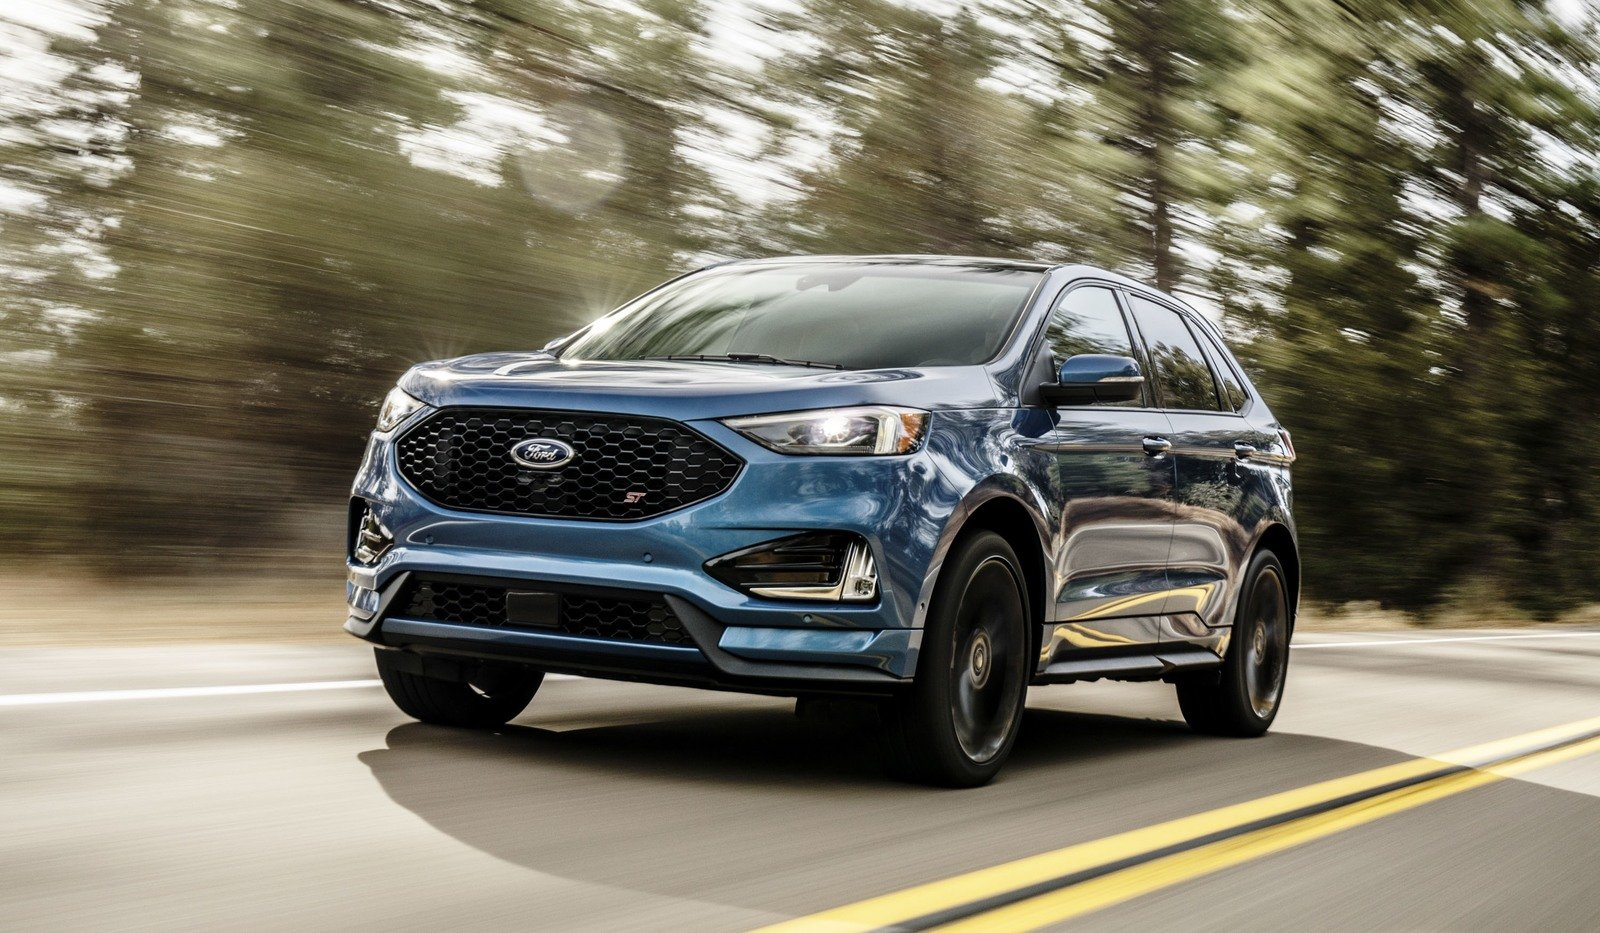 2019 ford edge price release date specs interior design review. Black Bedroom Furniture Sets. Home Design Ideas